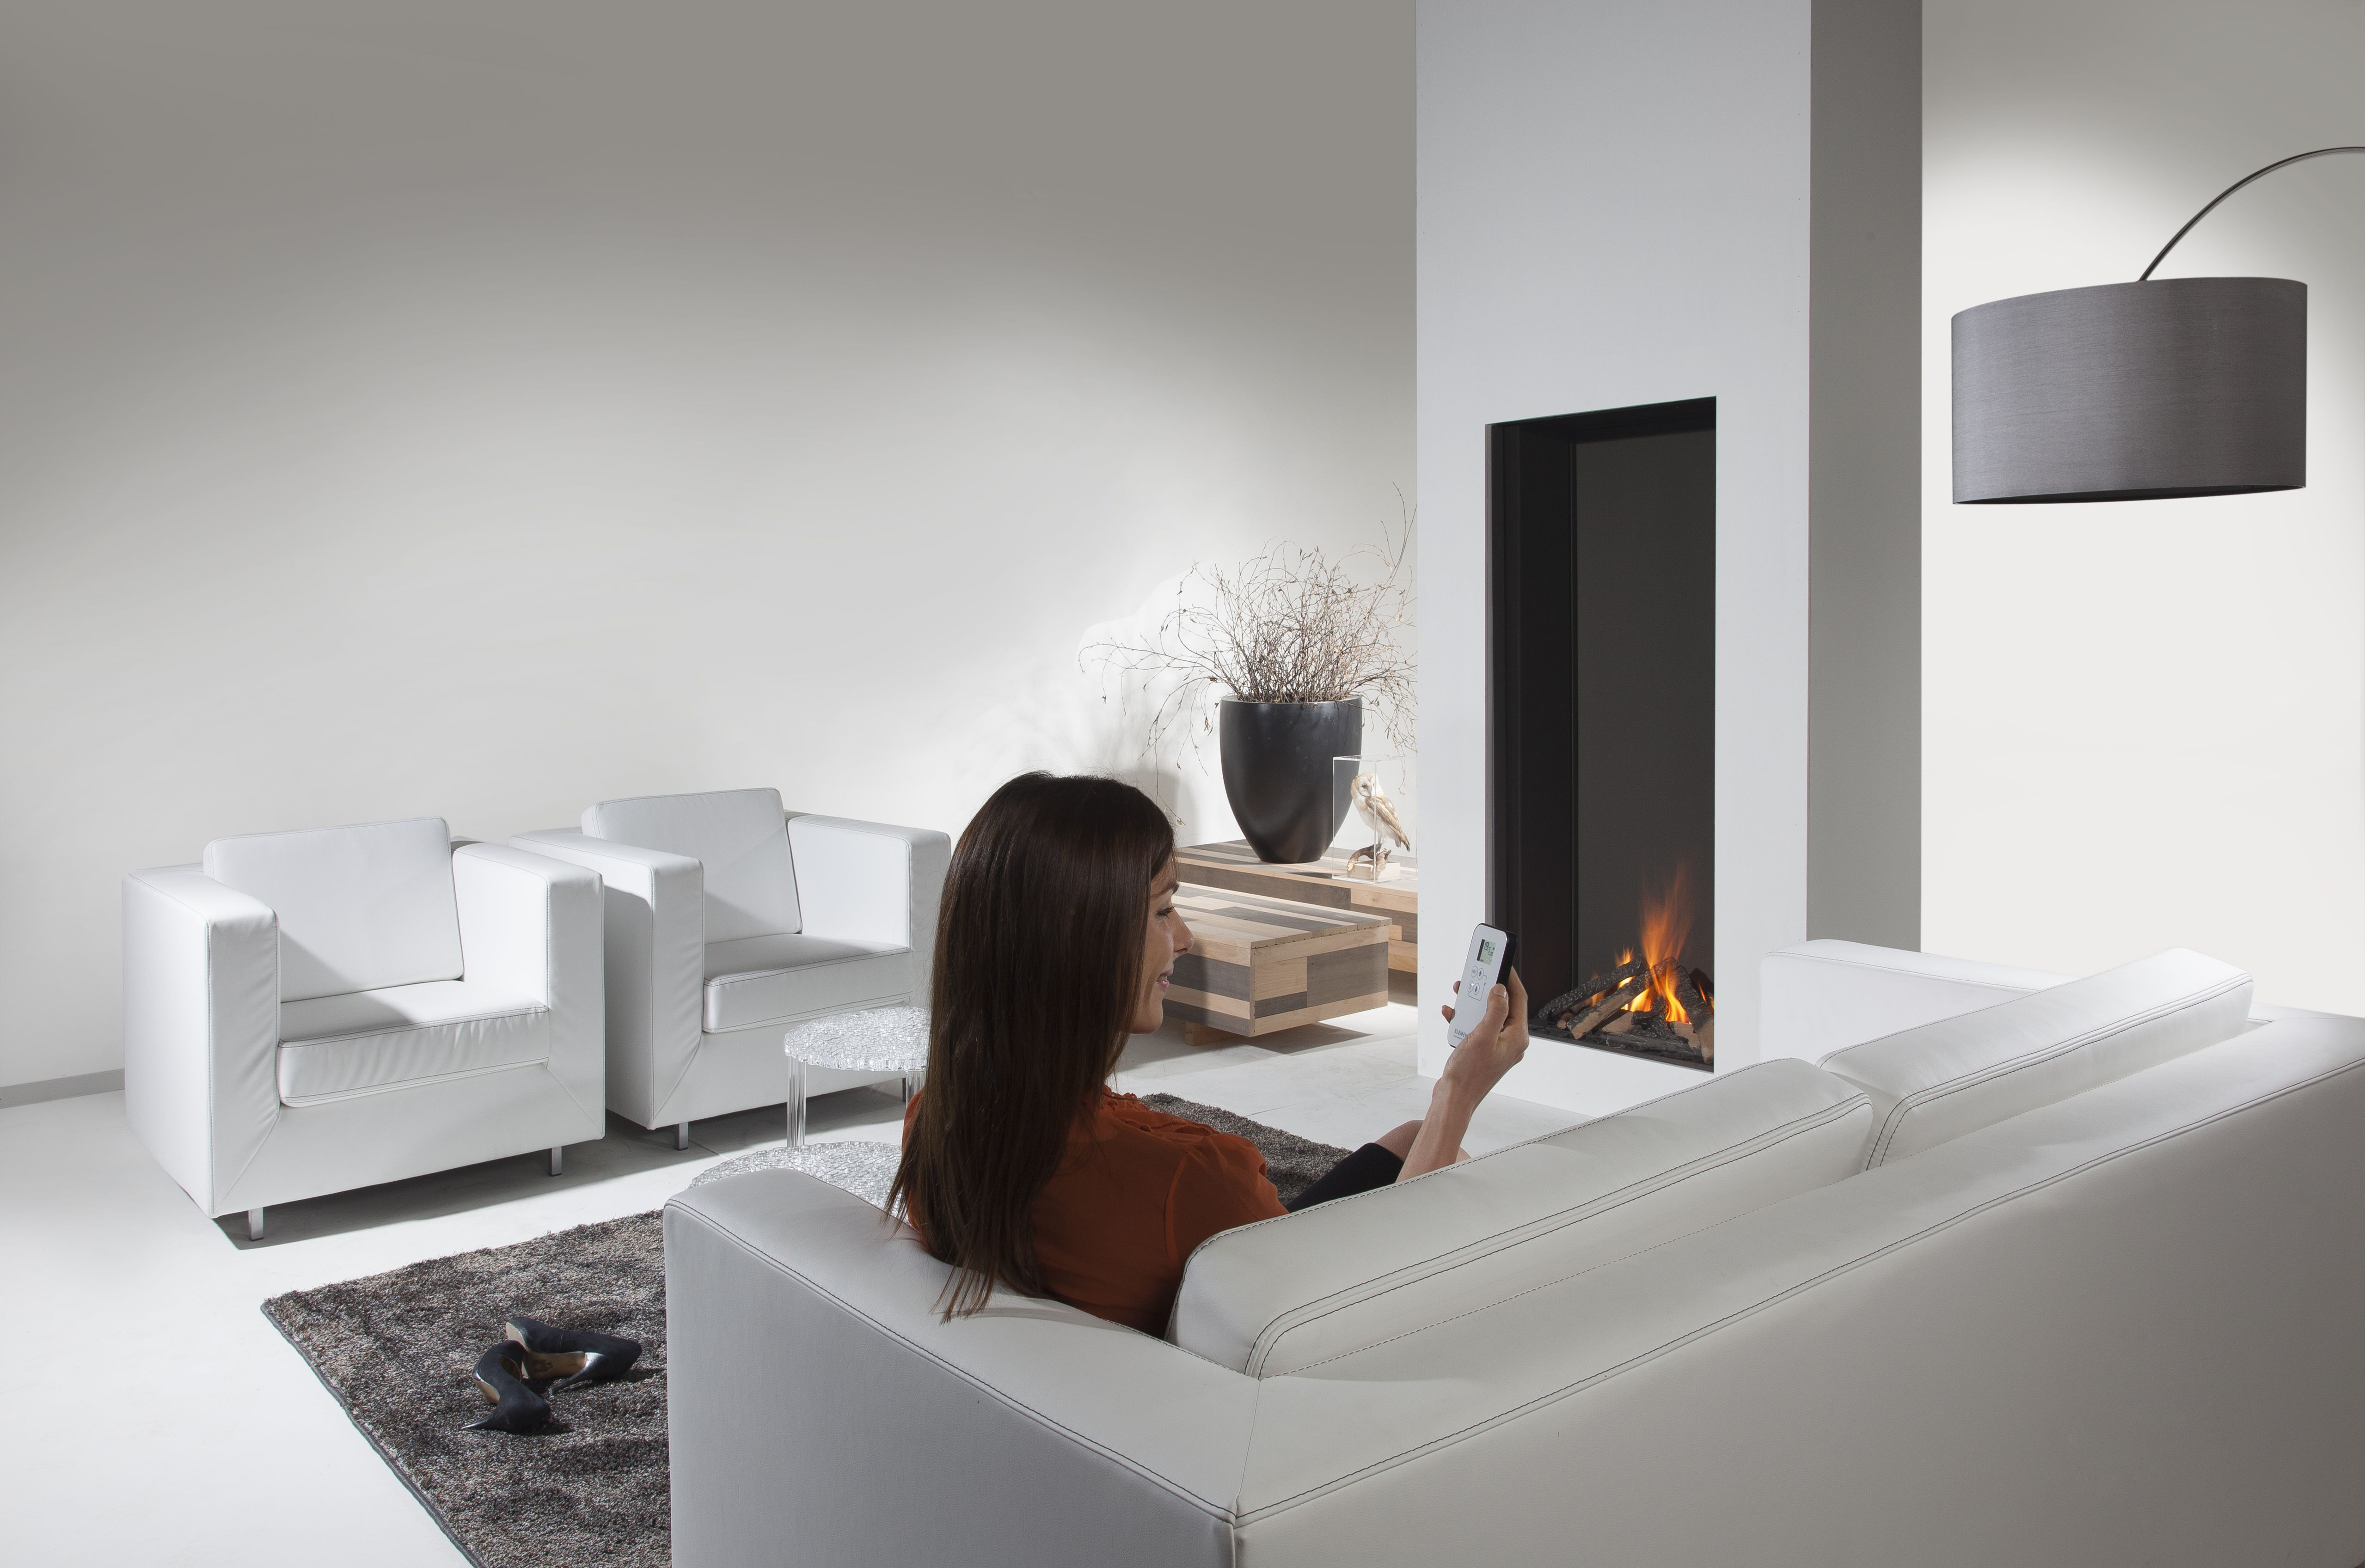 """Sky -- This vertical fireplace soars over 5 feet tall making a """"Wow"""" factor in your your home. Double burner technology means the flames have great variation. The homeowner will appreciate such precise control."""